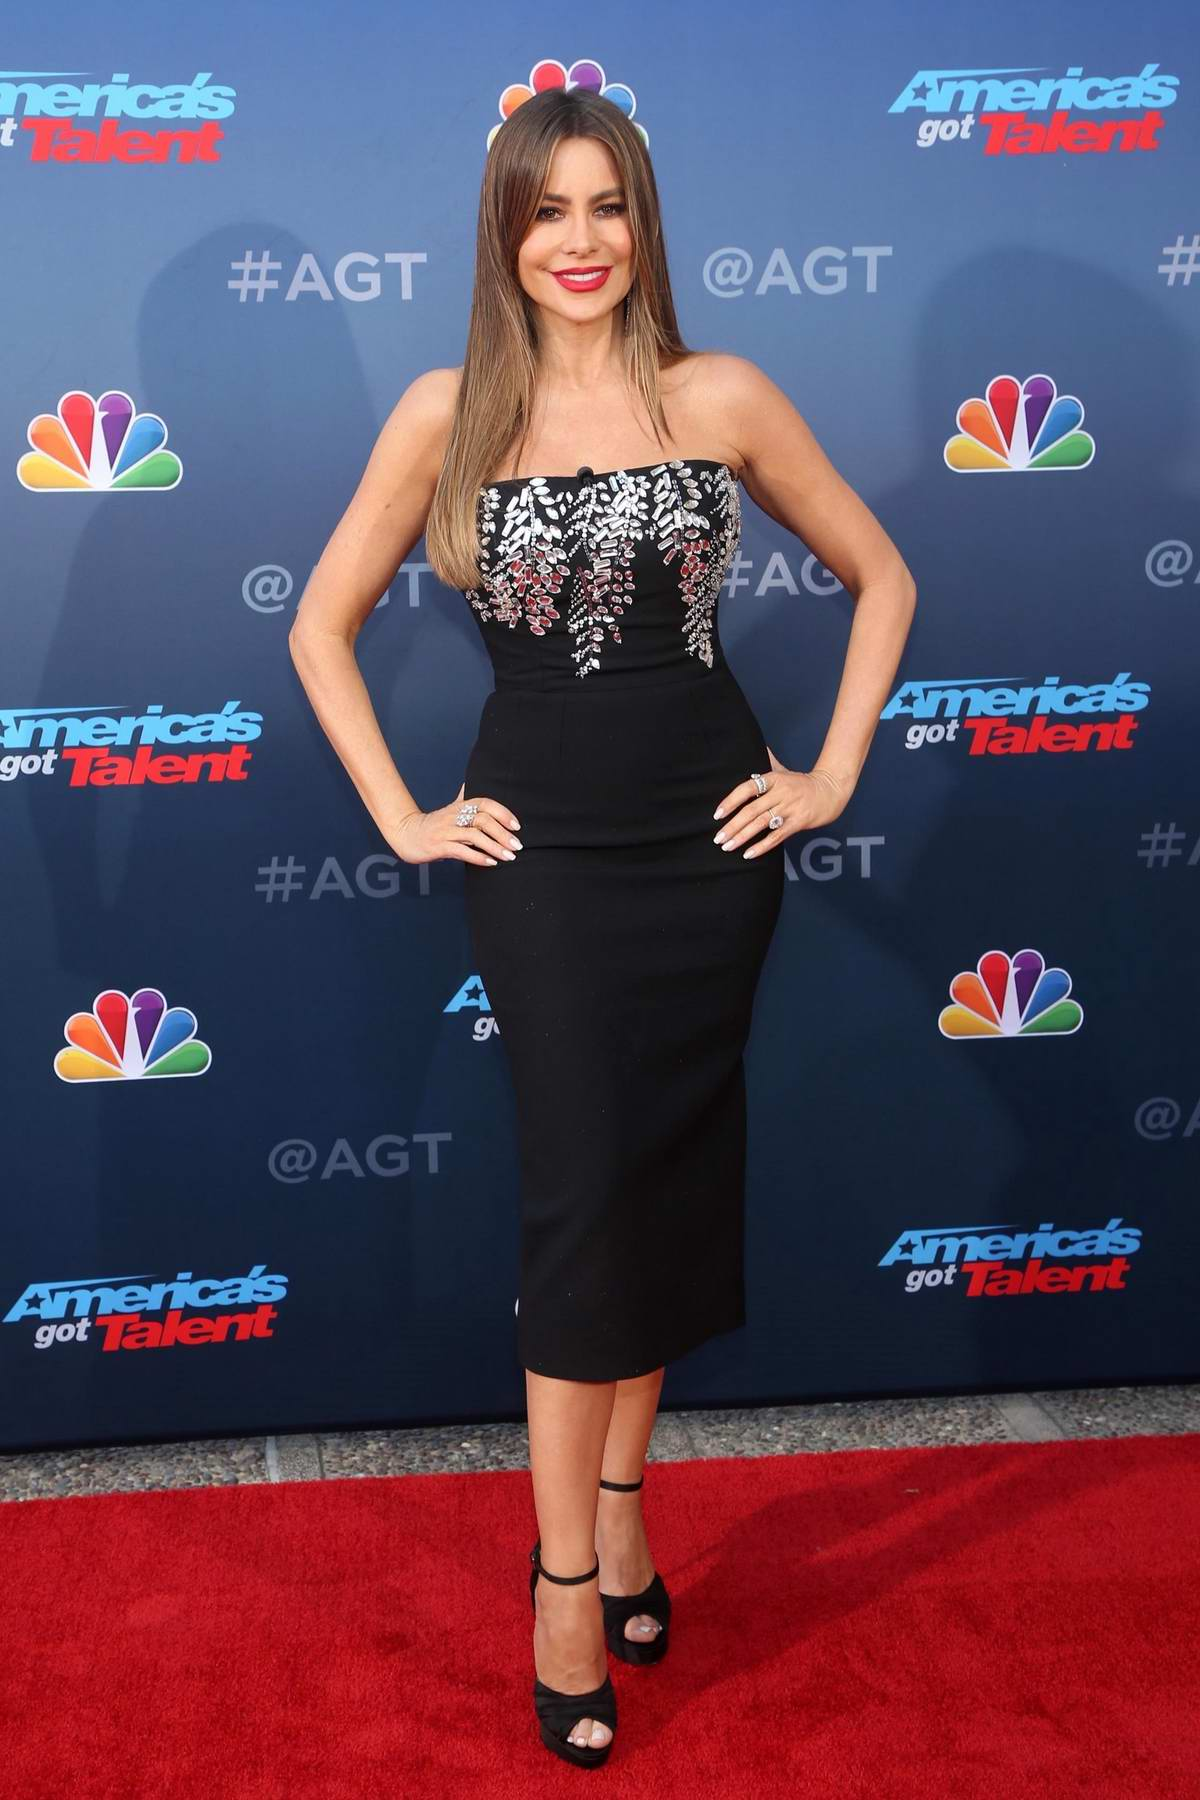 Sofia Vergara attends the 'America's Got Talent' Season 15 Kickoff at Pasadena Civic Auditorium in Pasadena, California